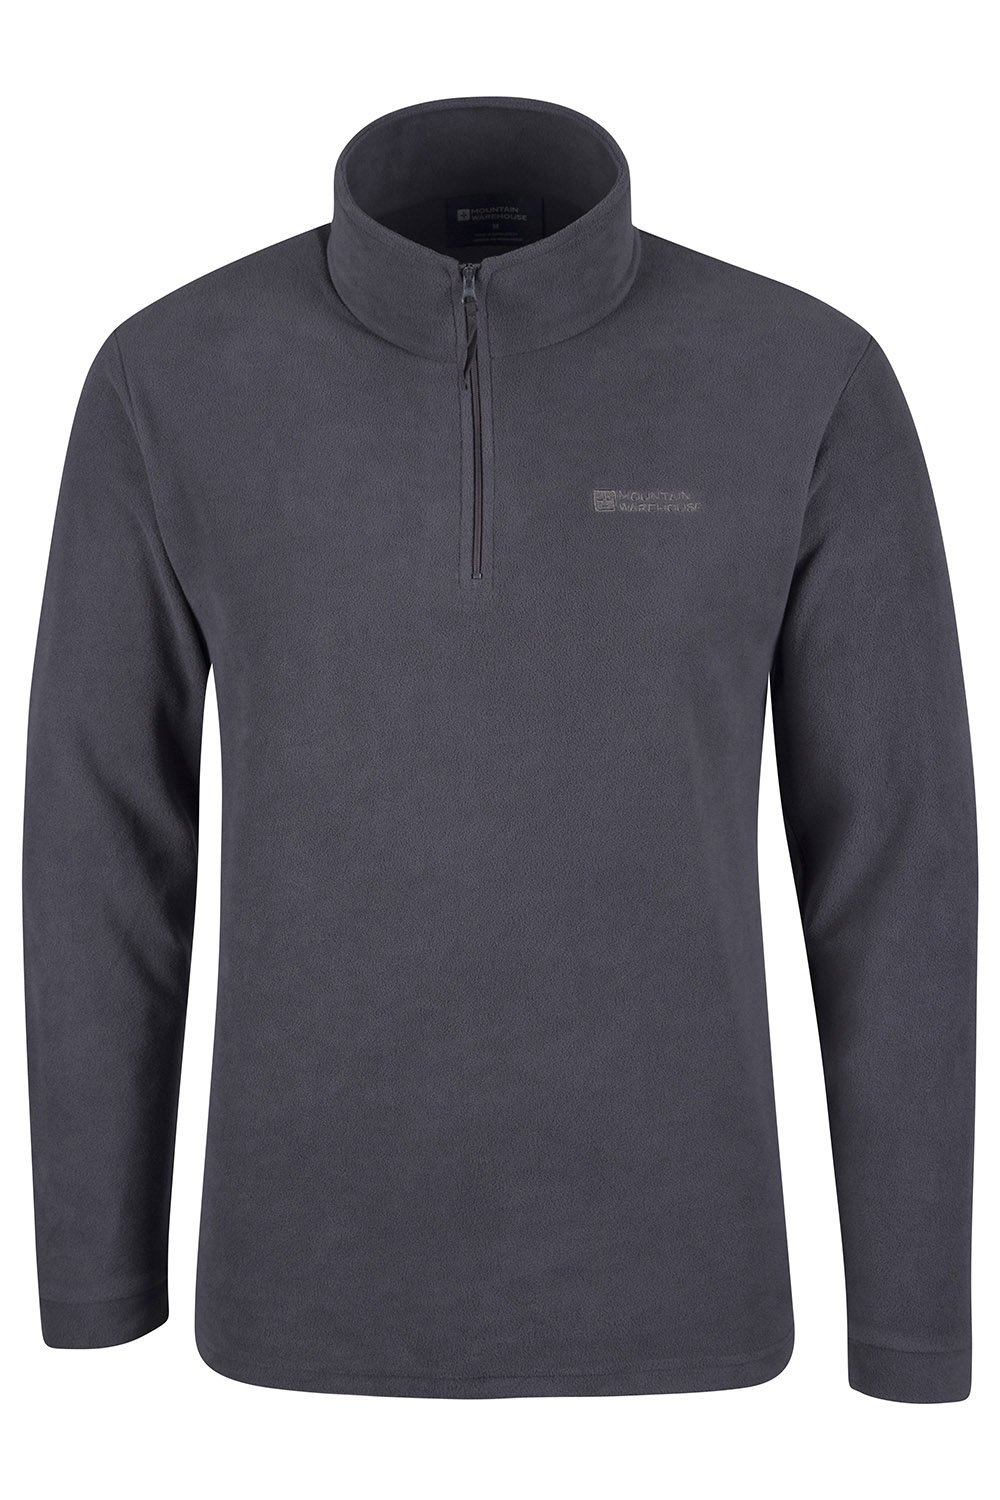 Mountain Warehouse Mens Camber Fleece Top - Lightweight Top, Breathable Sweater, Quick Drying Pullover, Extra Ventilation - Ideal for Winter Walking 1